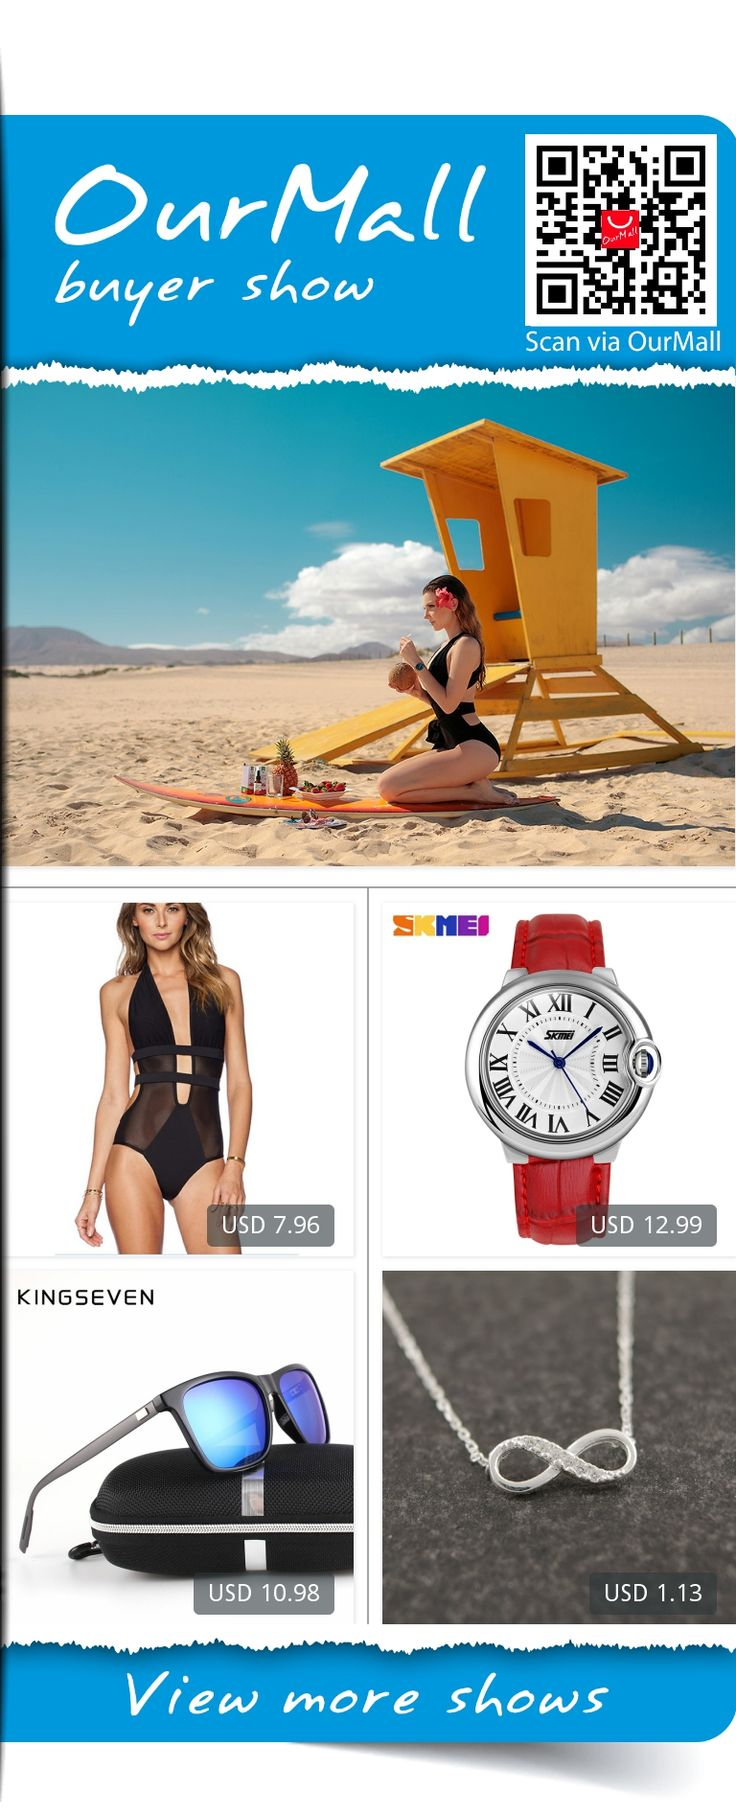 The surfer life,  #necklace #necklace #bathing suit #swimwear #watch #beach #beachwear #summer  , http://ourmall.com/r/fmE7Jz